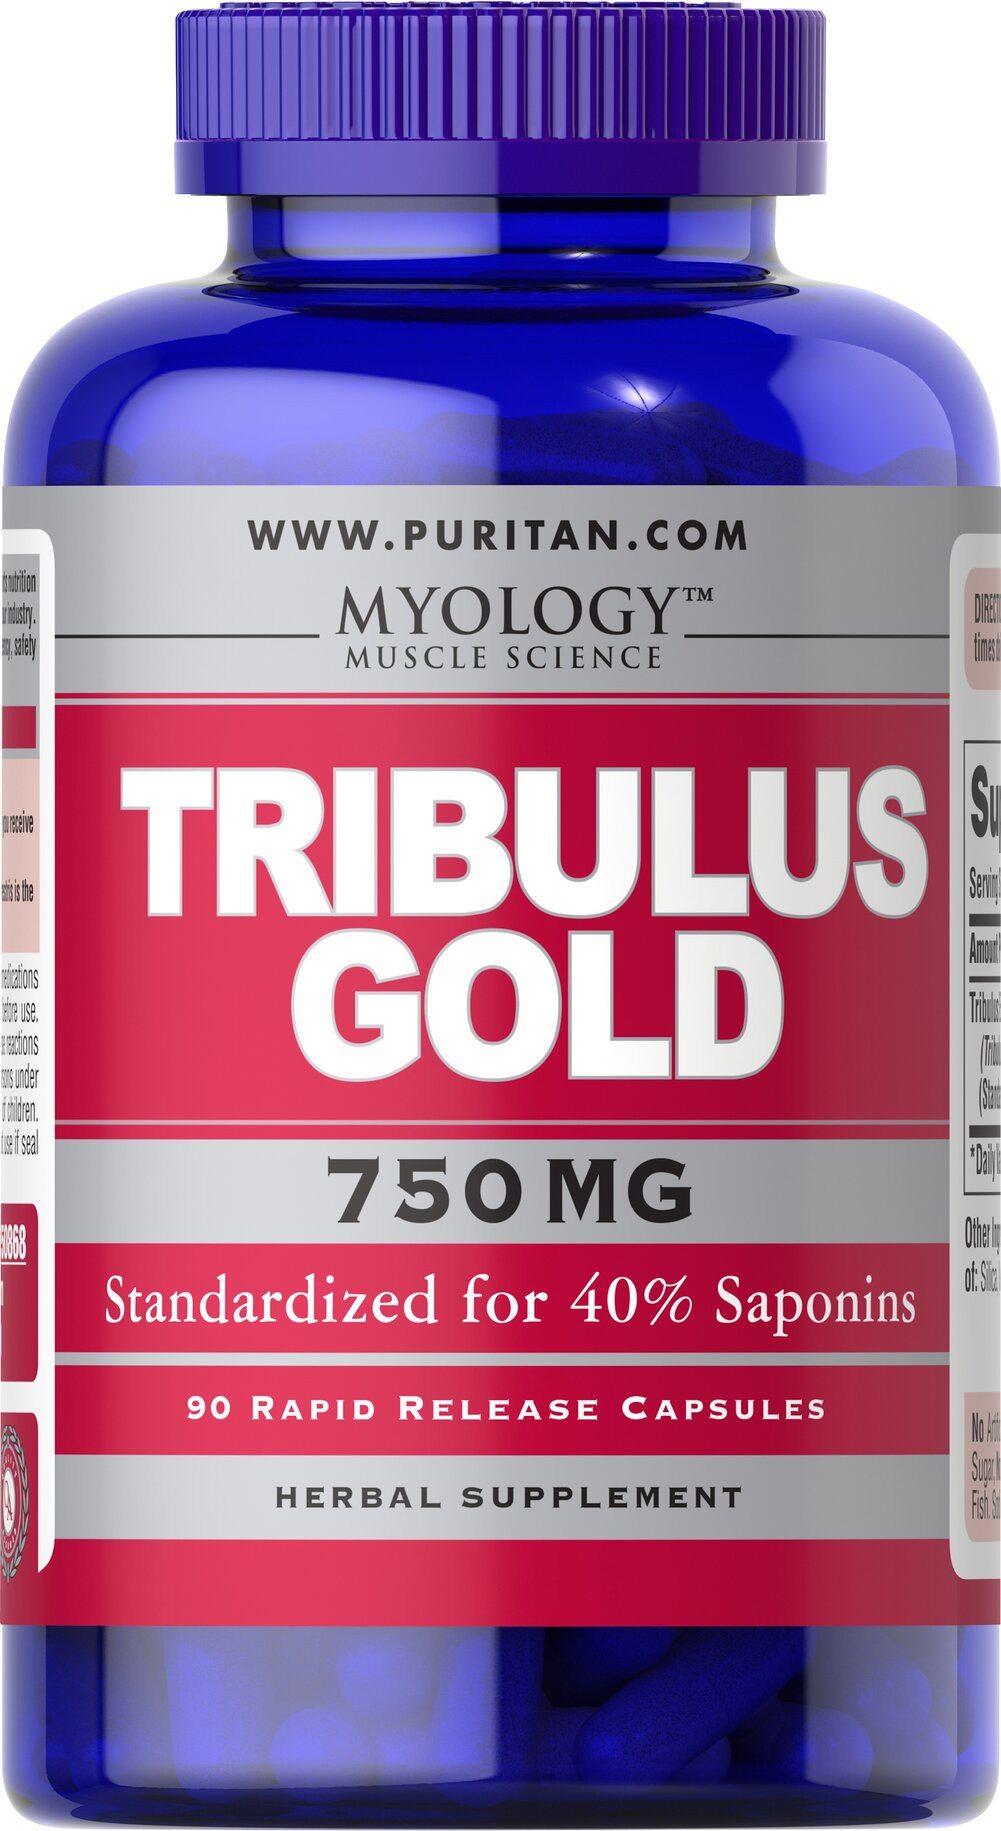 Tribulus Gold Standardized Extract 750 mg Tribulus GOLD <p>•Lab-tested for 40% saponins per serving, to help ensure you receive the active components.</p><p>•An herb traditionally used by bodybuilders, Tribulus Terrestris is the perfect complement to your hardcore training regimen!</p><p></p><p></p> 90 Capsules 750 mg $19.99